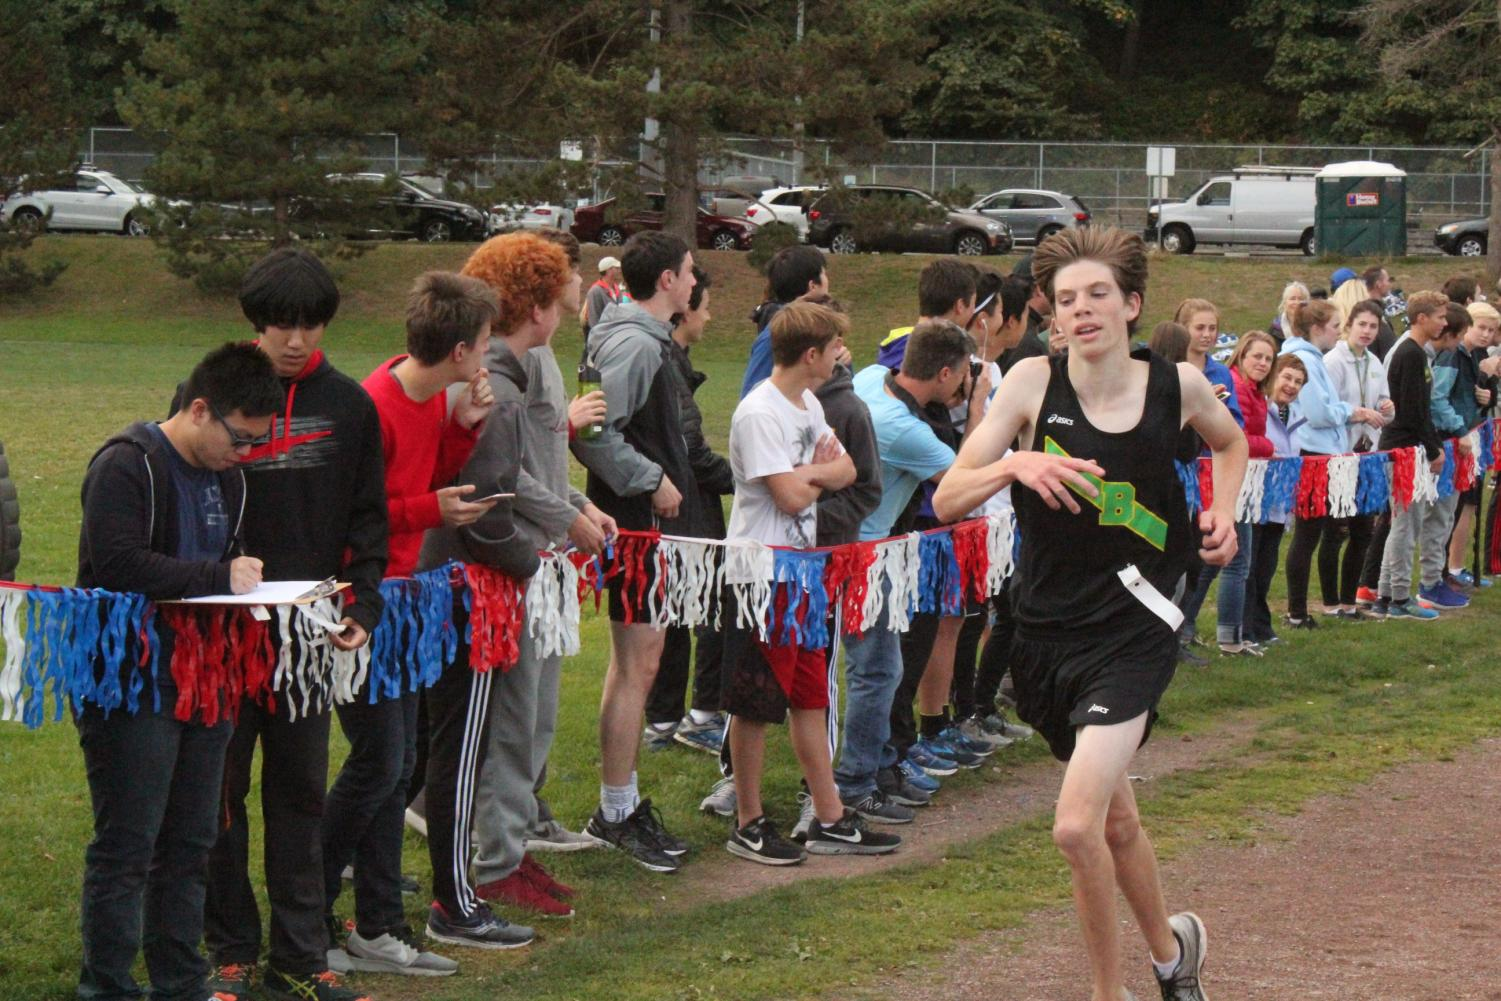 Drew Schornak, an avid participant in winter training, is seen here running down the chute to the finish line during his 2017 cross country season.